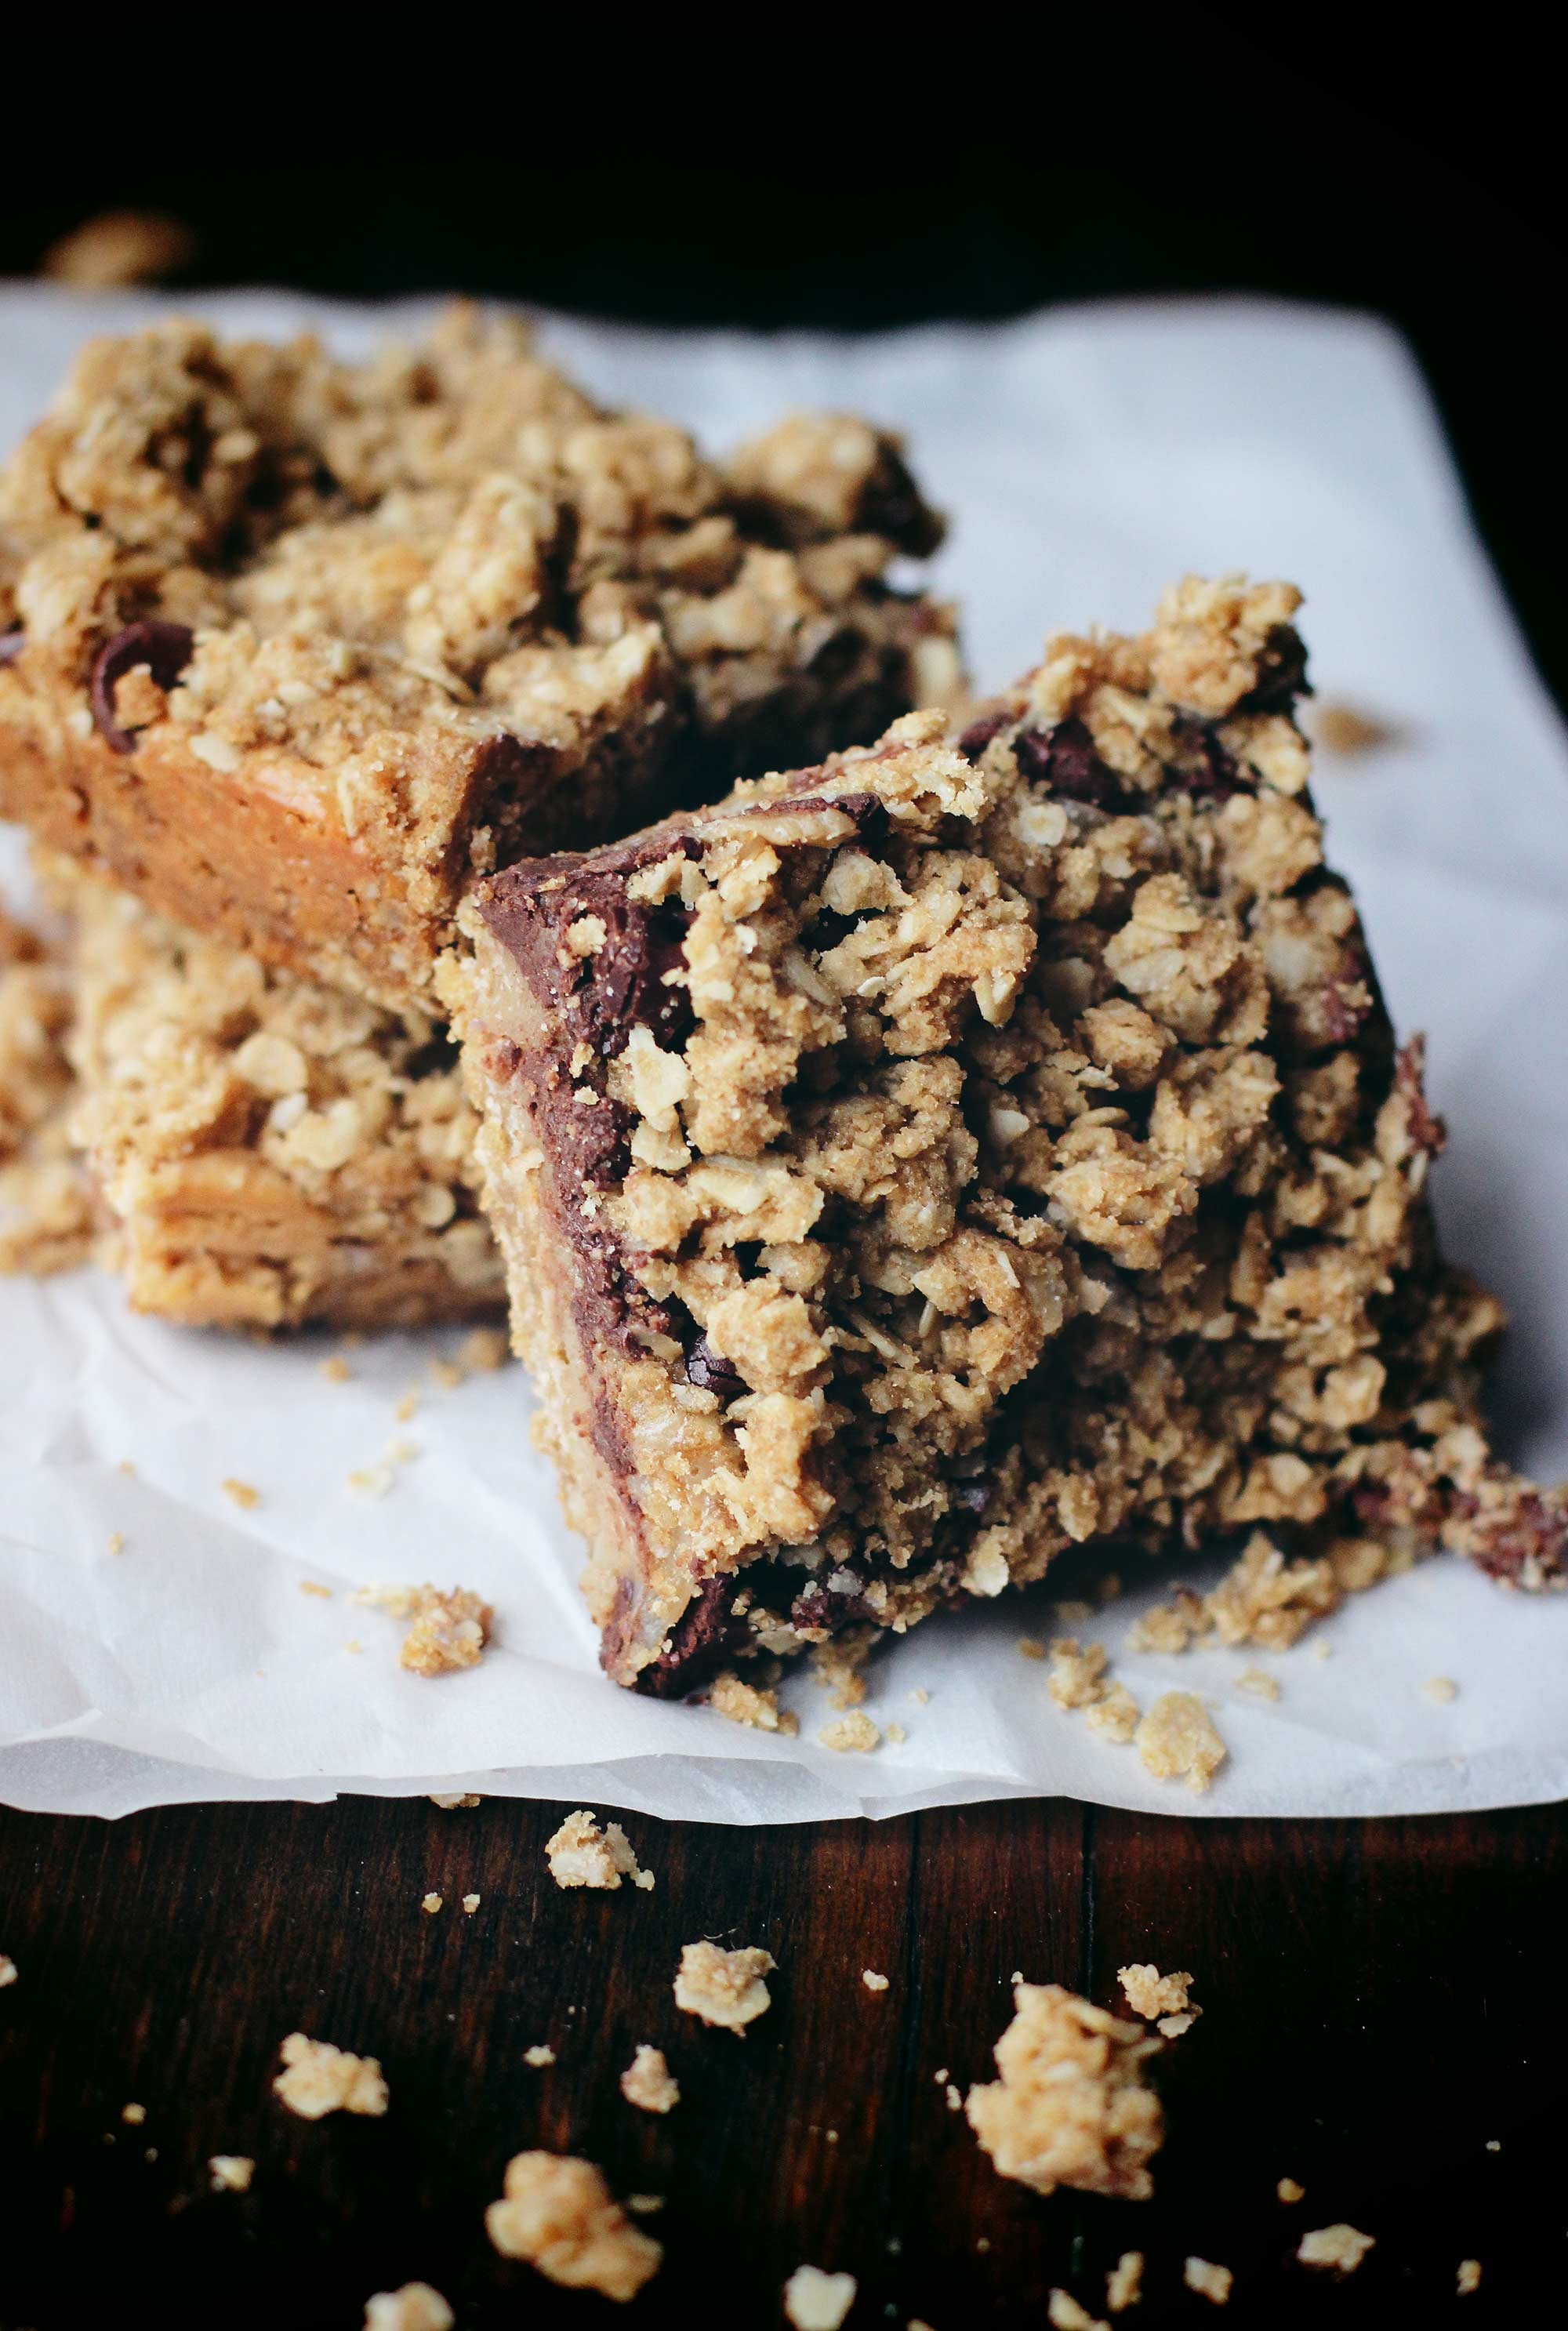 Peanut Butter Chocolate Oatmeal Crumble Bars